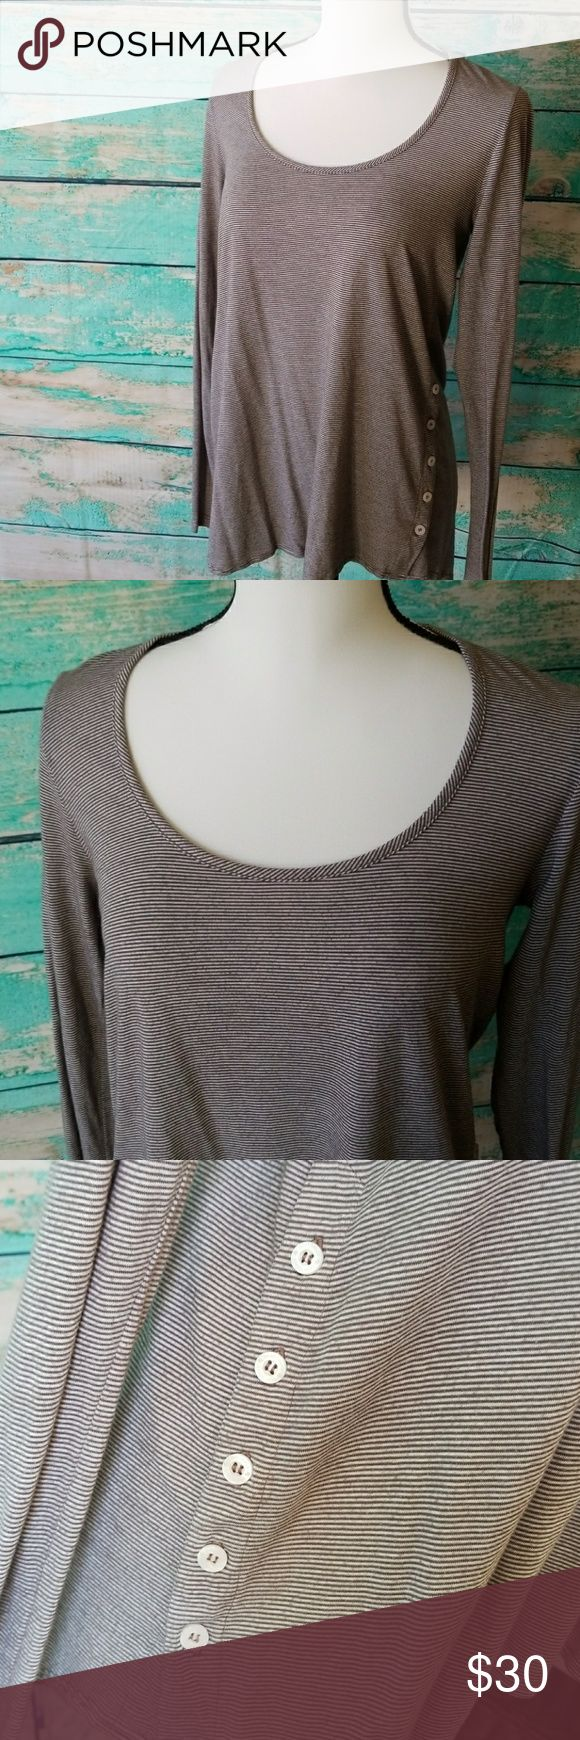 Saint Grace Button Side Sweater 🔸️Like New Condition   🔸️Side button details. Can be unbuttoned for a different look  🔸️Long hemline in the back; covers your butt. Saint Grace Tops Tees - Long Sleeve